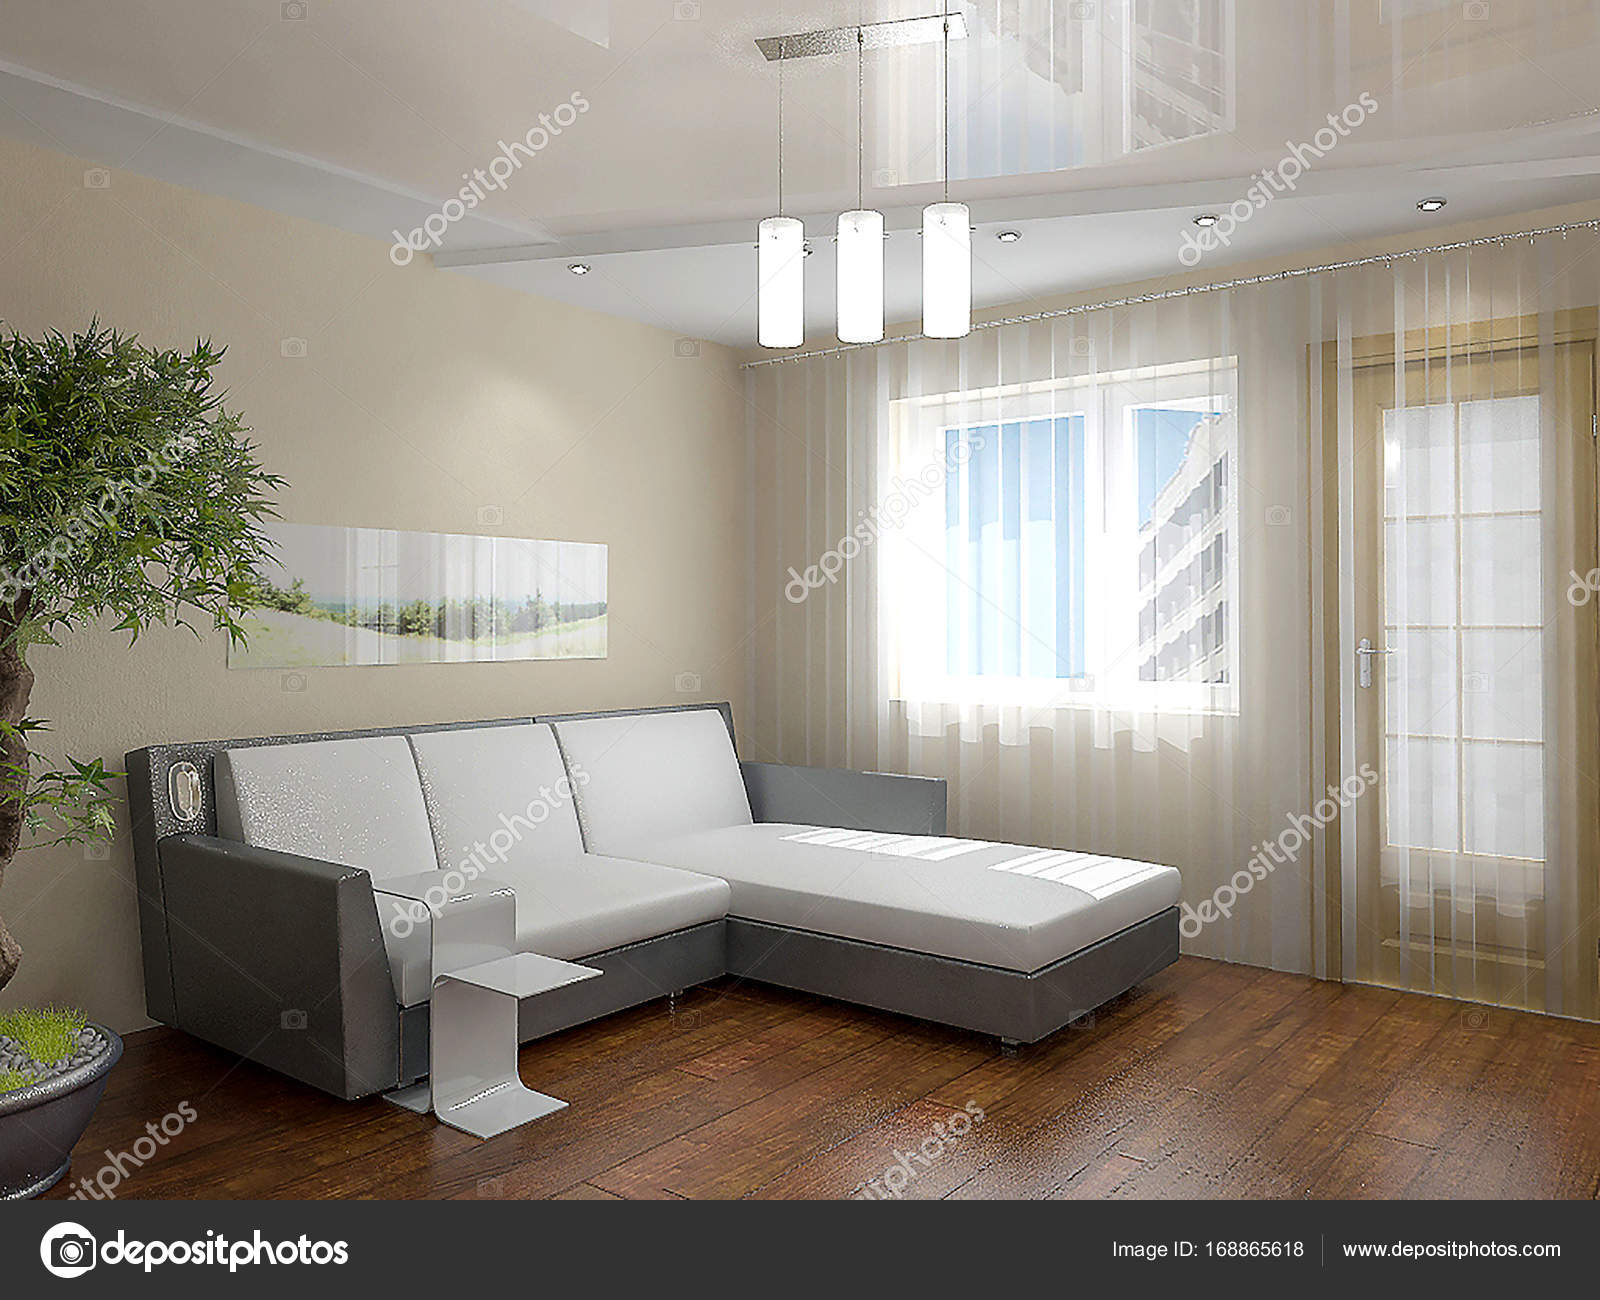 Woonkamer interieur idee n 3d render stockfoto for Interieur ideeen